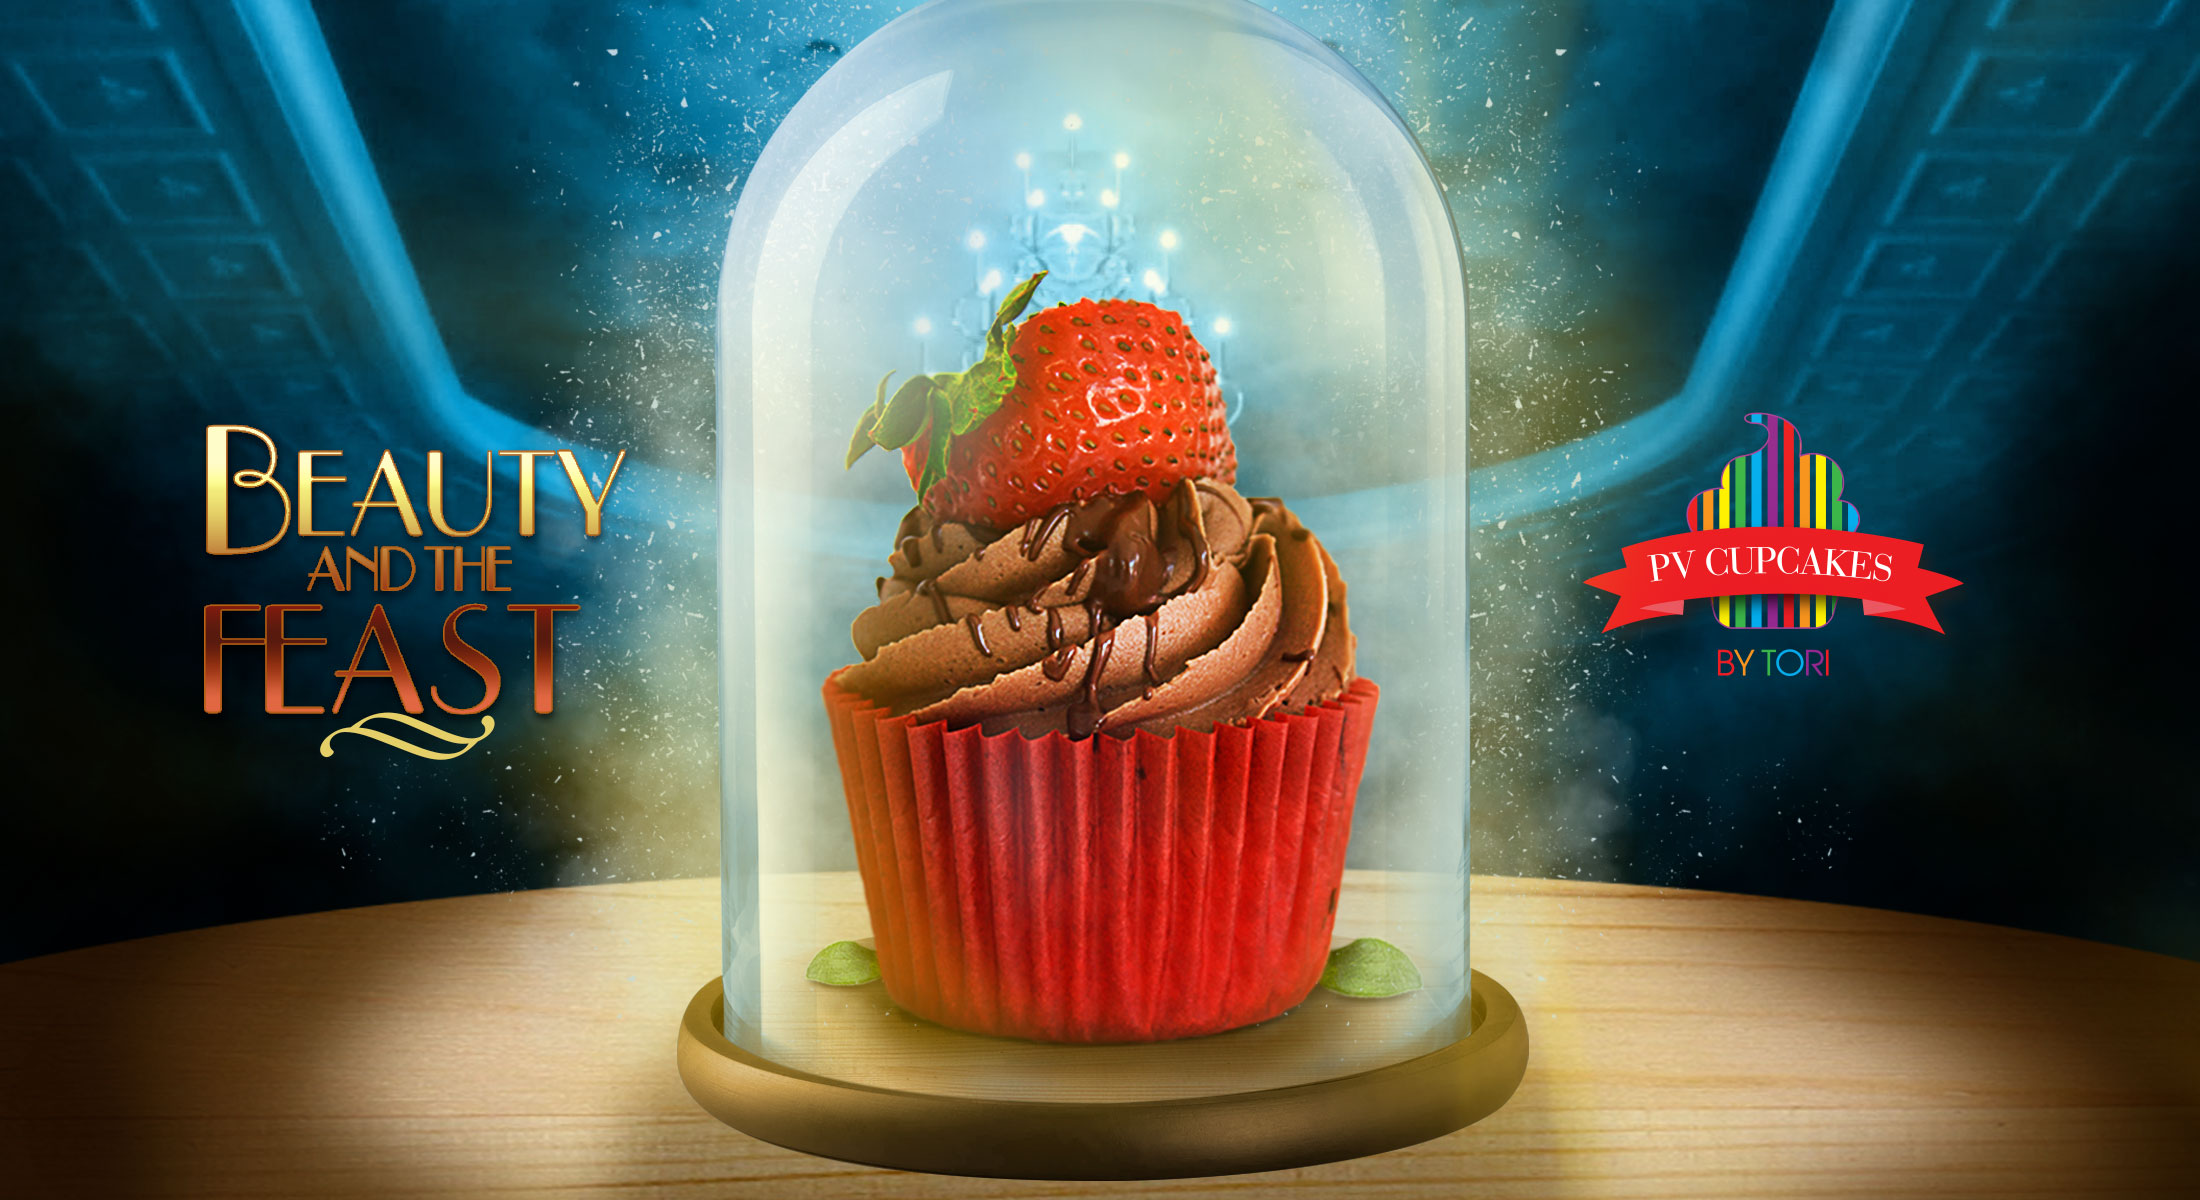 Beauty-and-the-Beast-Pv-Cupcakes